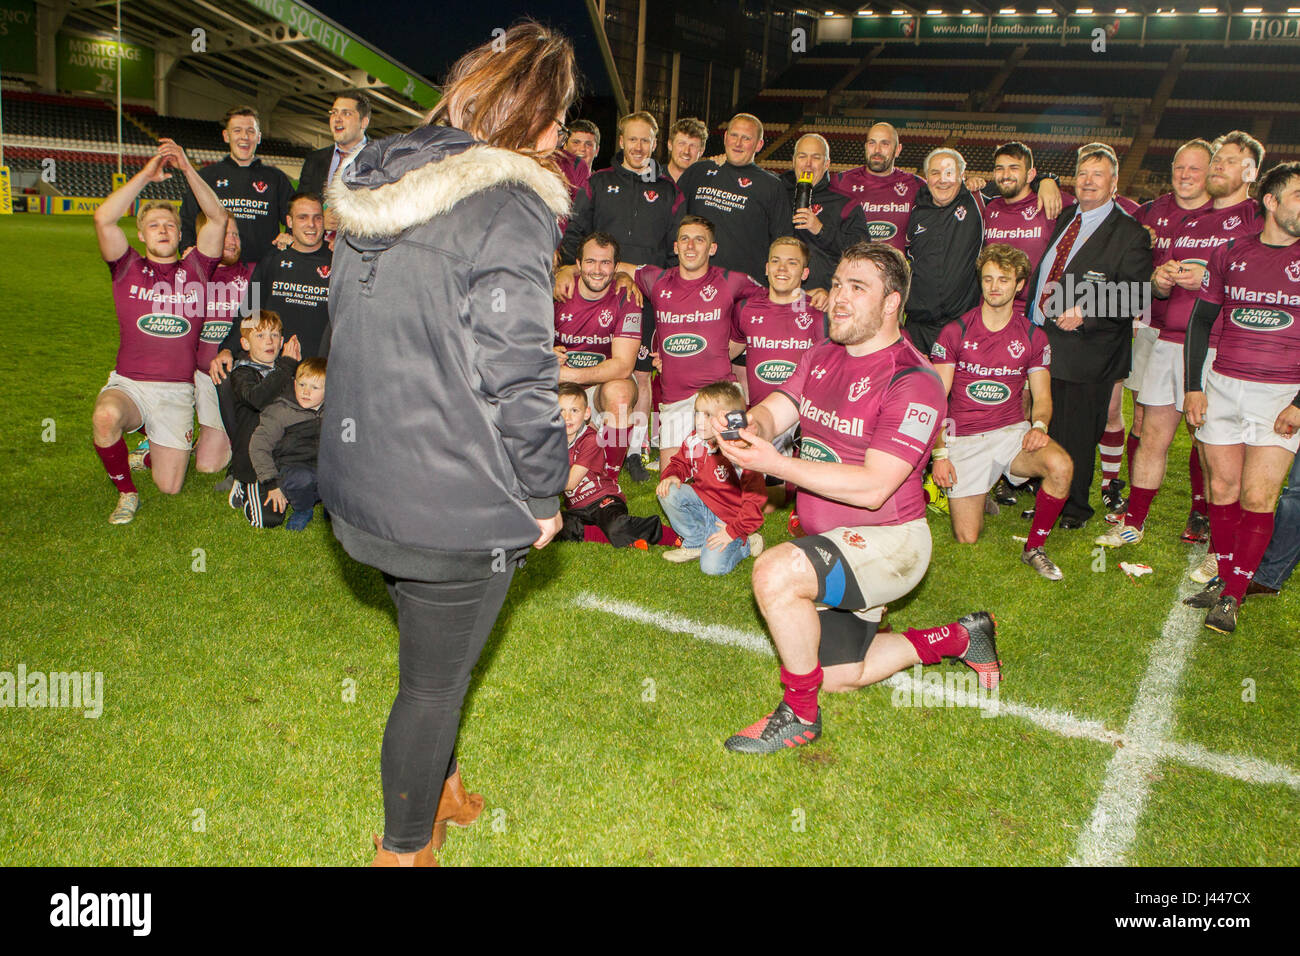 Leicester, UK. 9th May, 2017. Matt Cox proposes to girlfriend Beth immediately after his Melton Mowbray RFC team - Stock Image